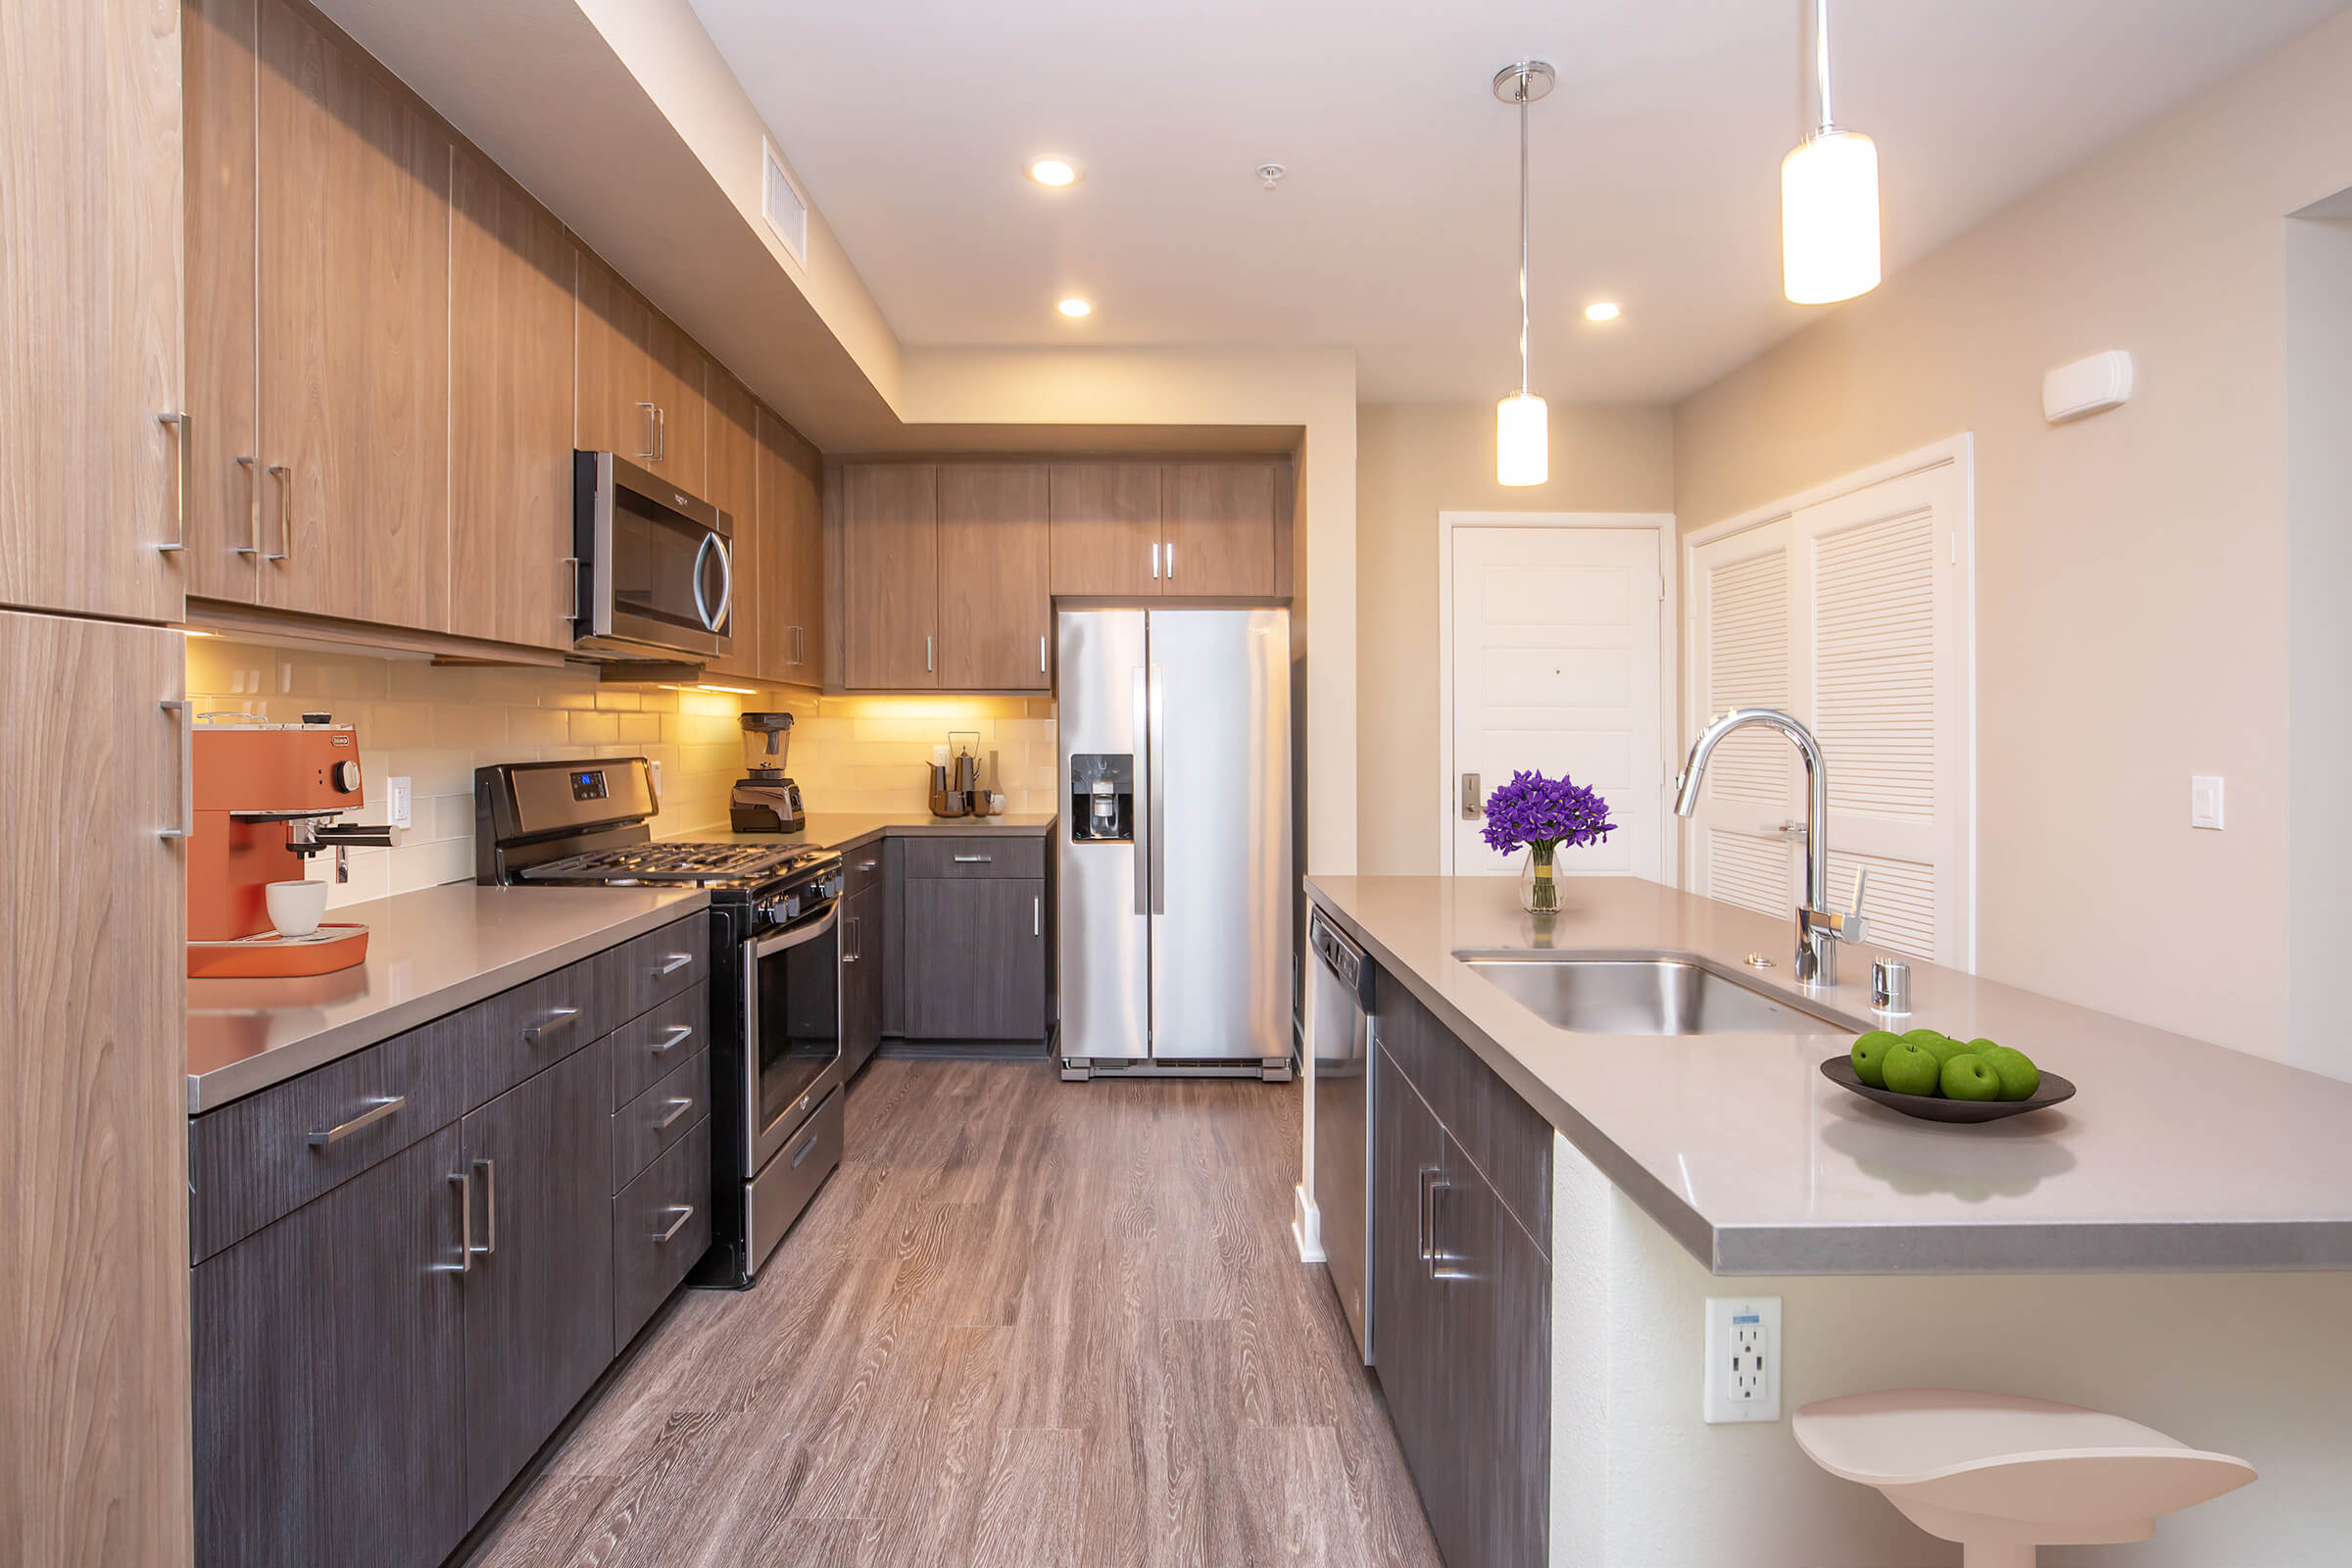 Kitchen with stainless steel appliance and wooden cabinets